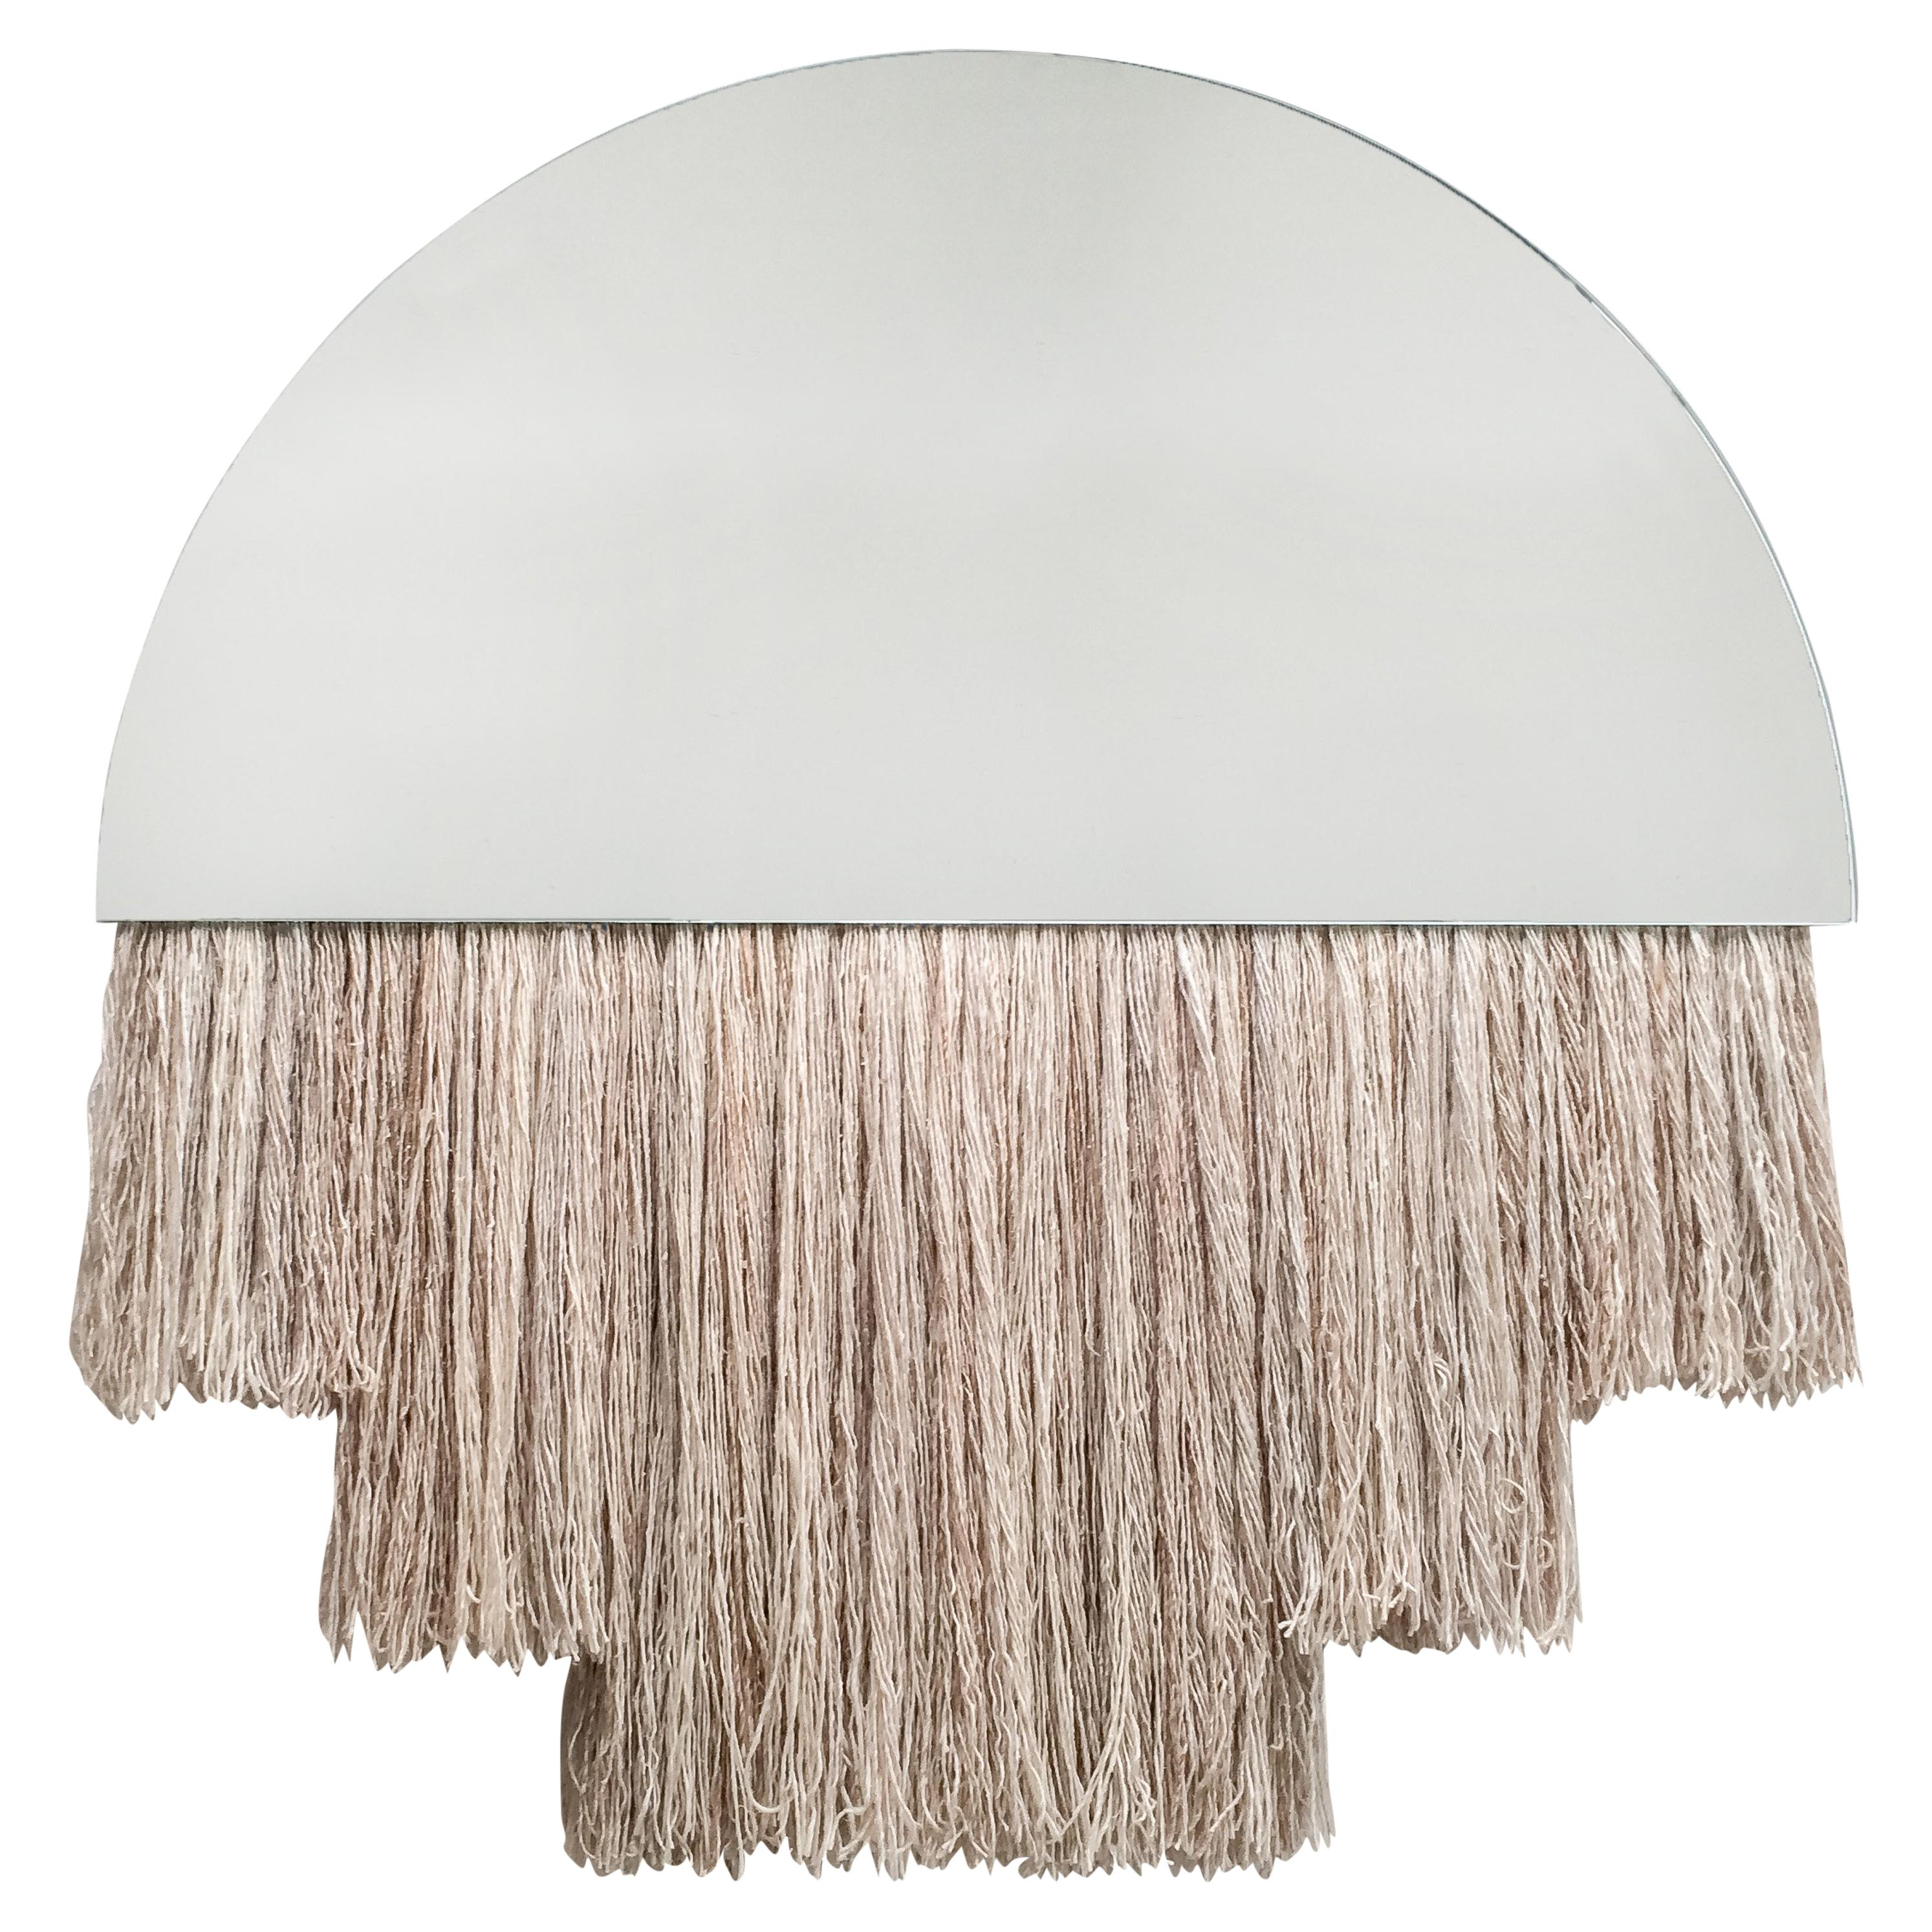 Large Clear Mirror with Fiber, Contemporary Half Moon Mirror by Ben & Aja Blanc